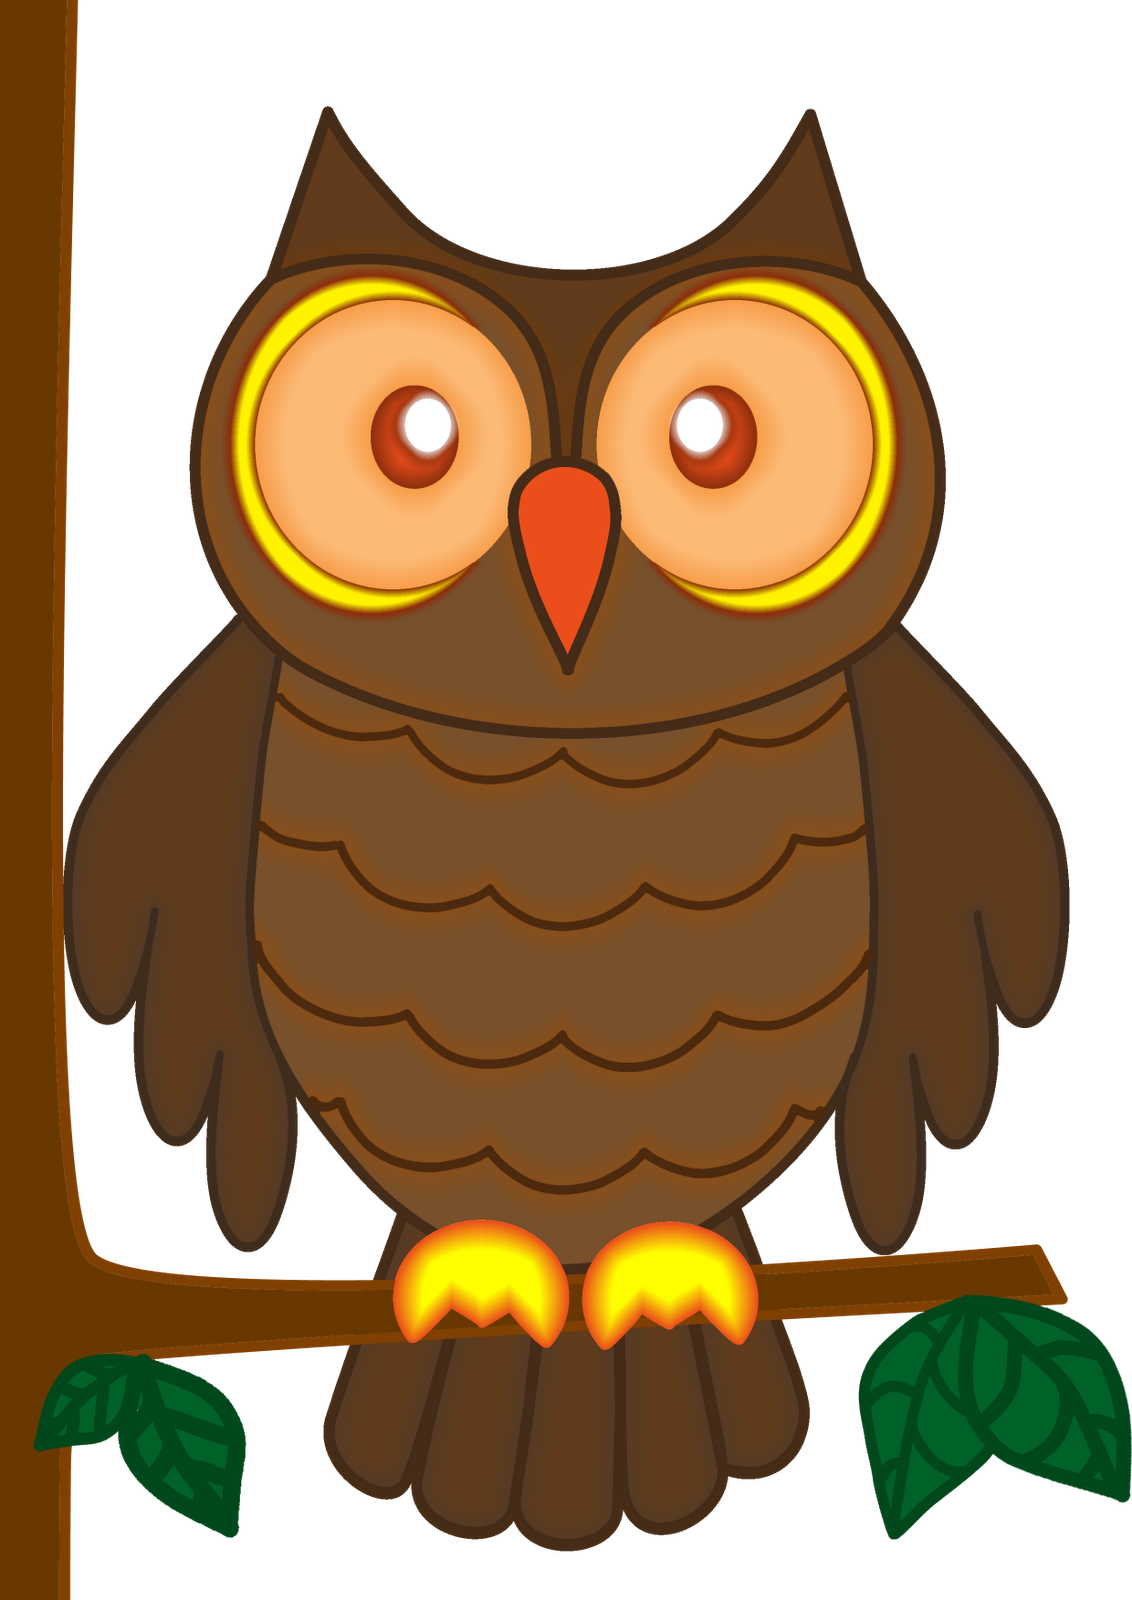 Owl clipart #1, Download drawings